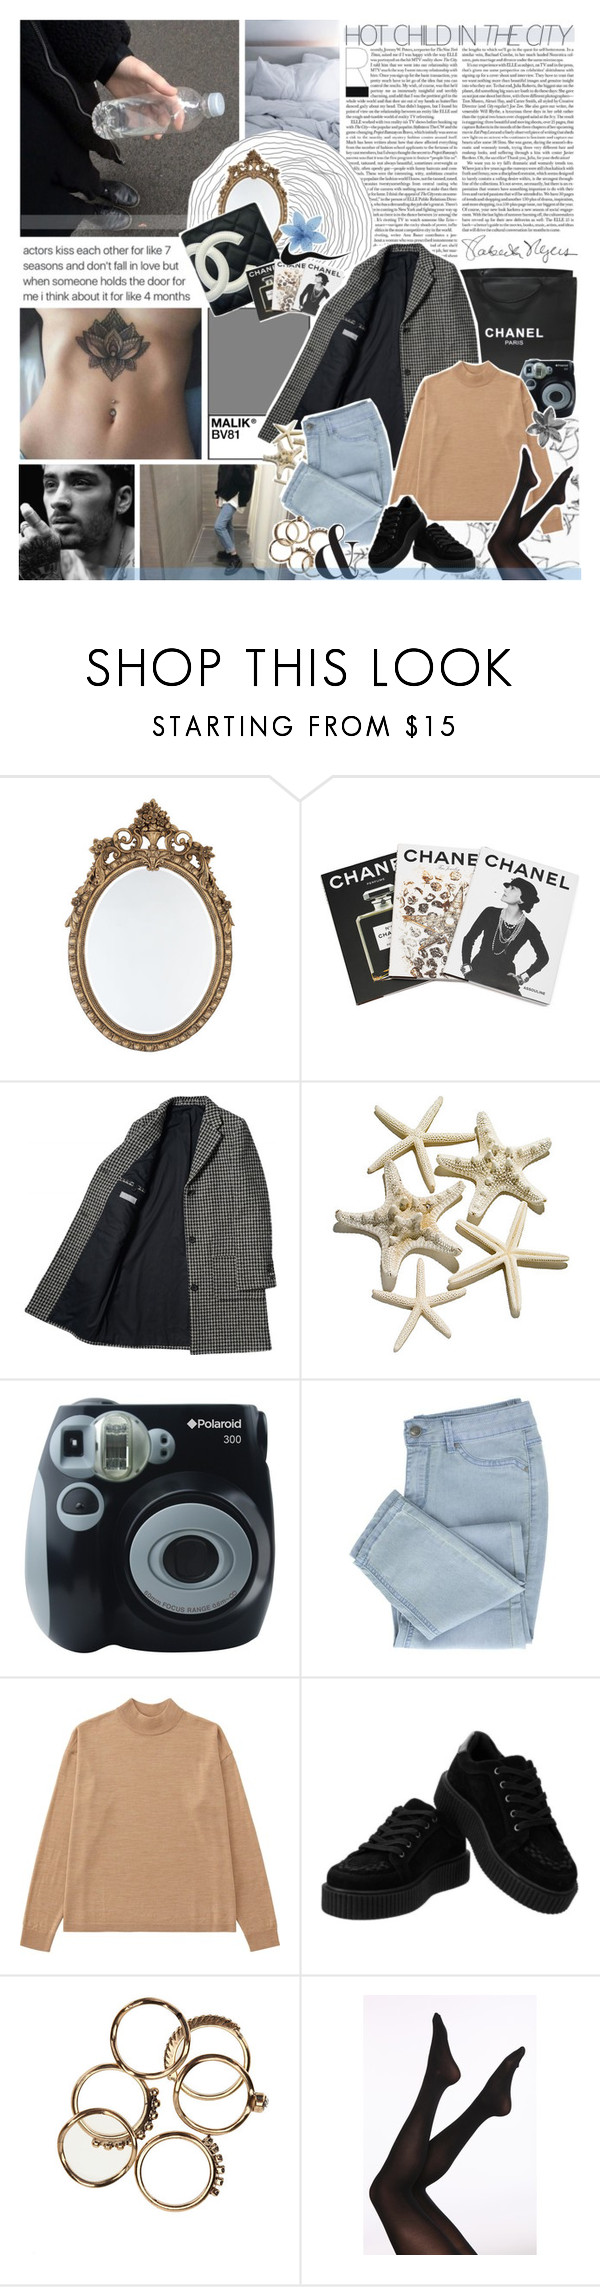 """HOT CHILD IN THE CITY /9/"" by emmas-fashion-diary ❤ liked on Polyvore featuring Chanel, Assouline Publishing, Polaroid and Uniqlo"